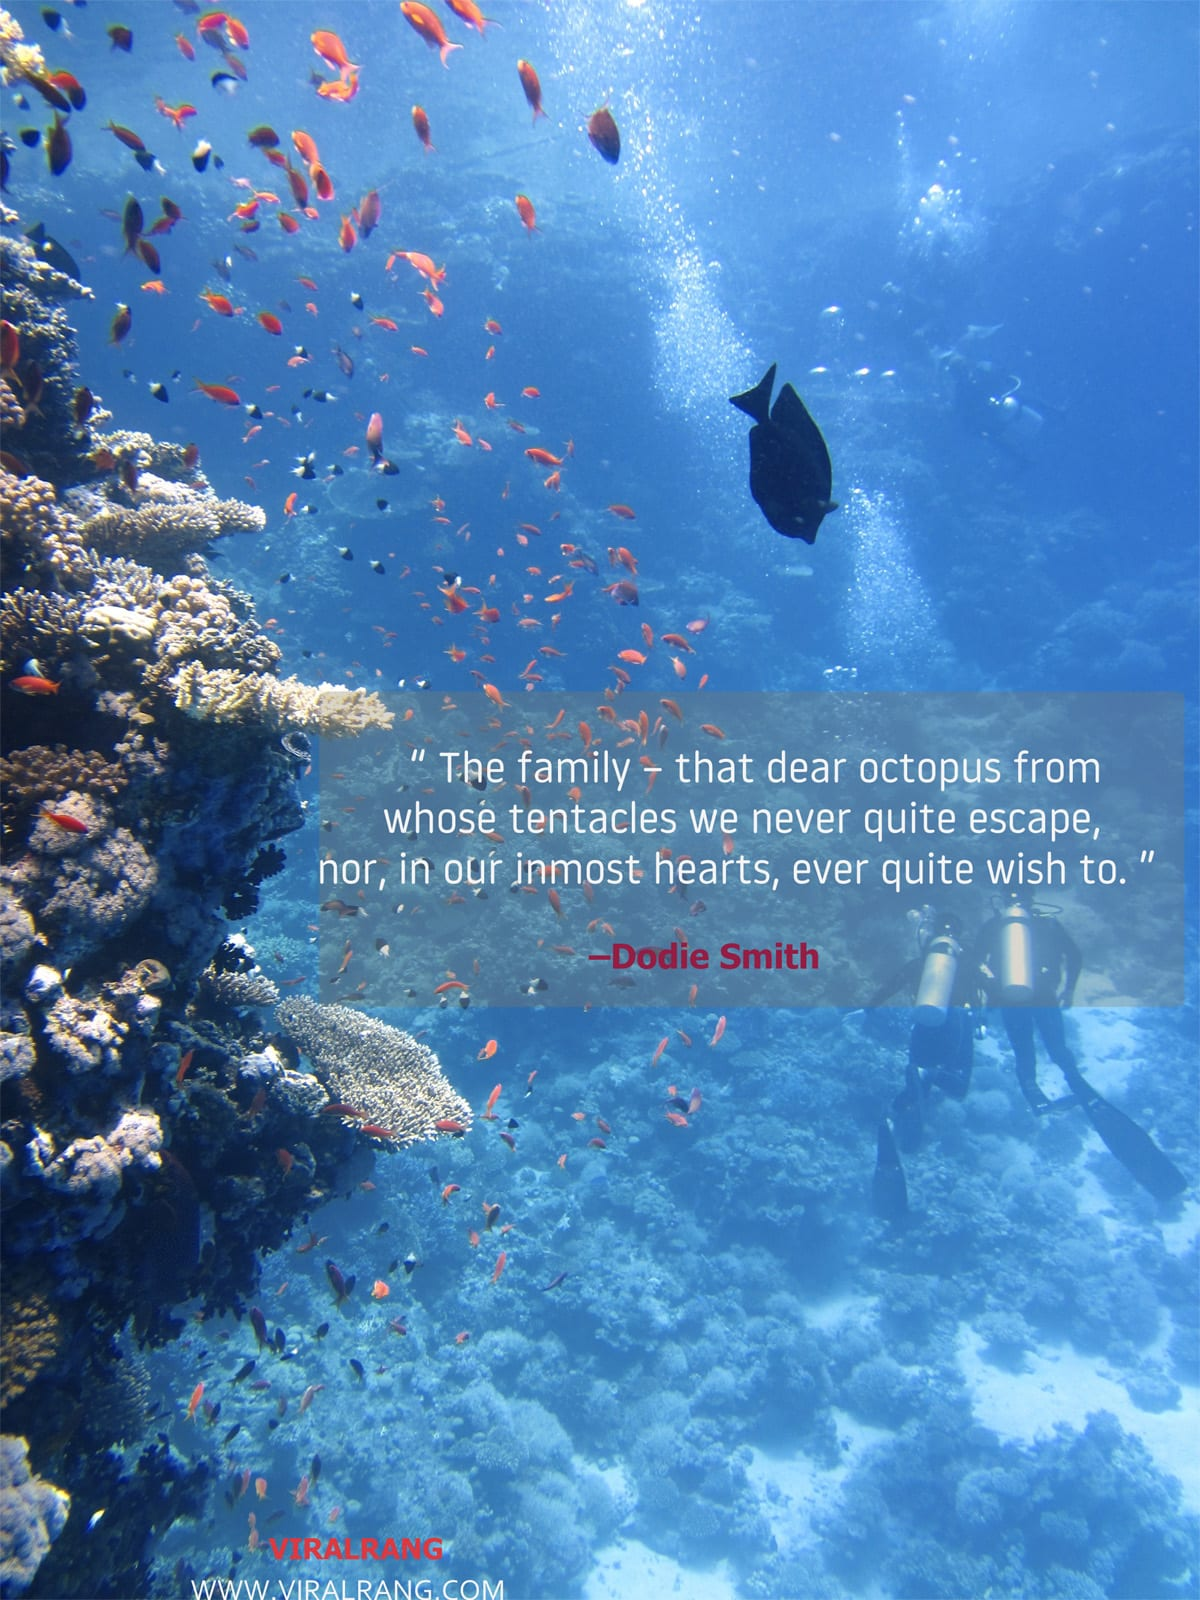 The family – that dear octopus